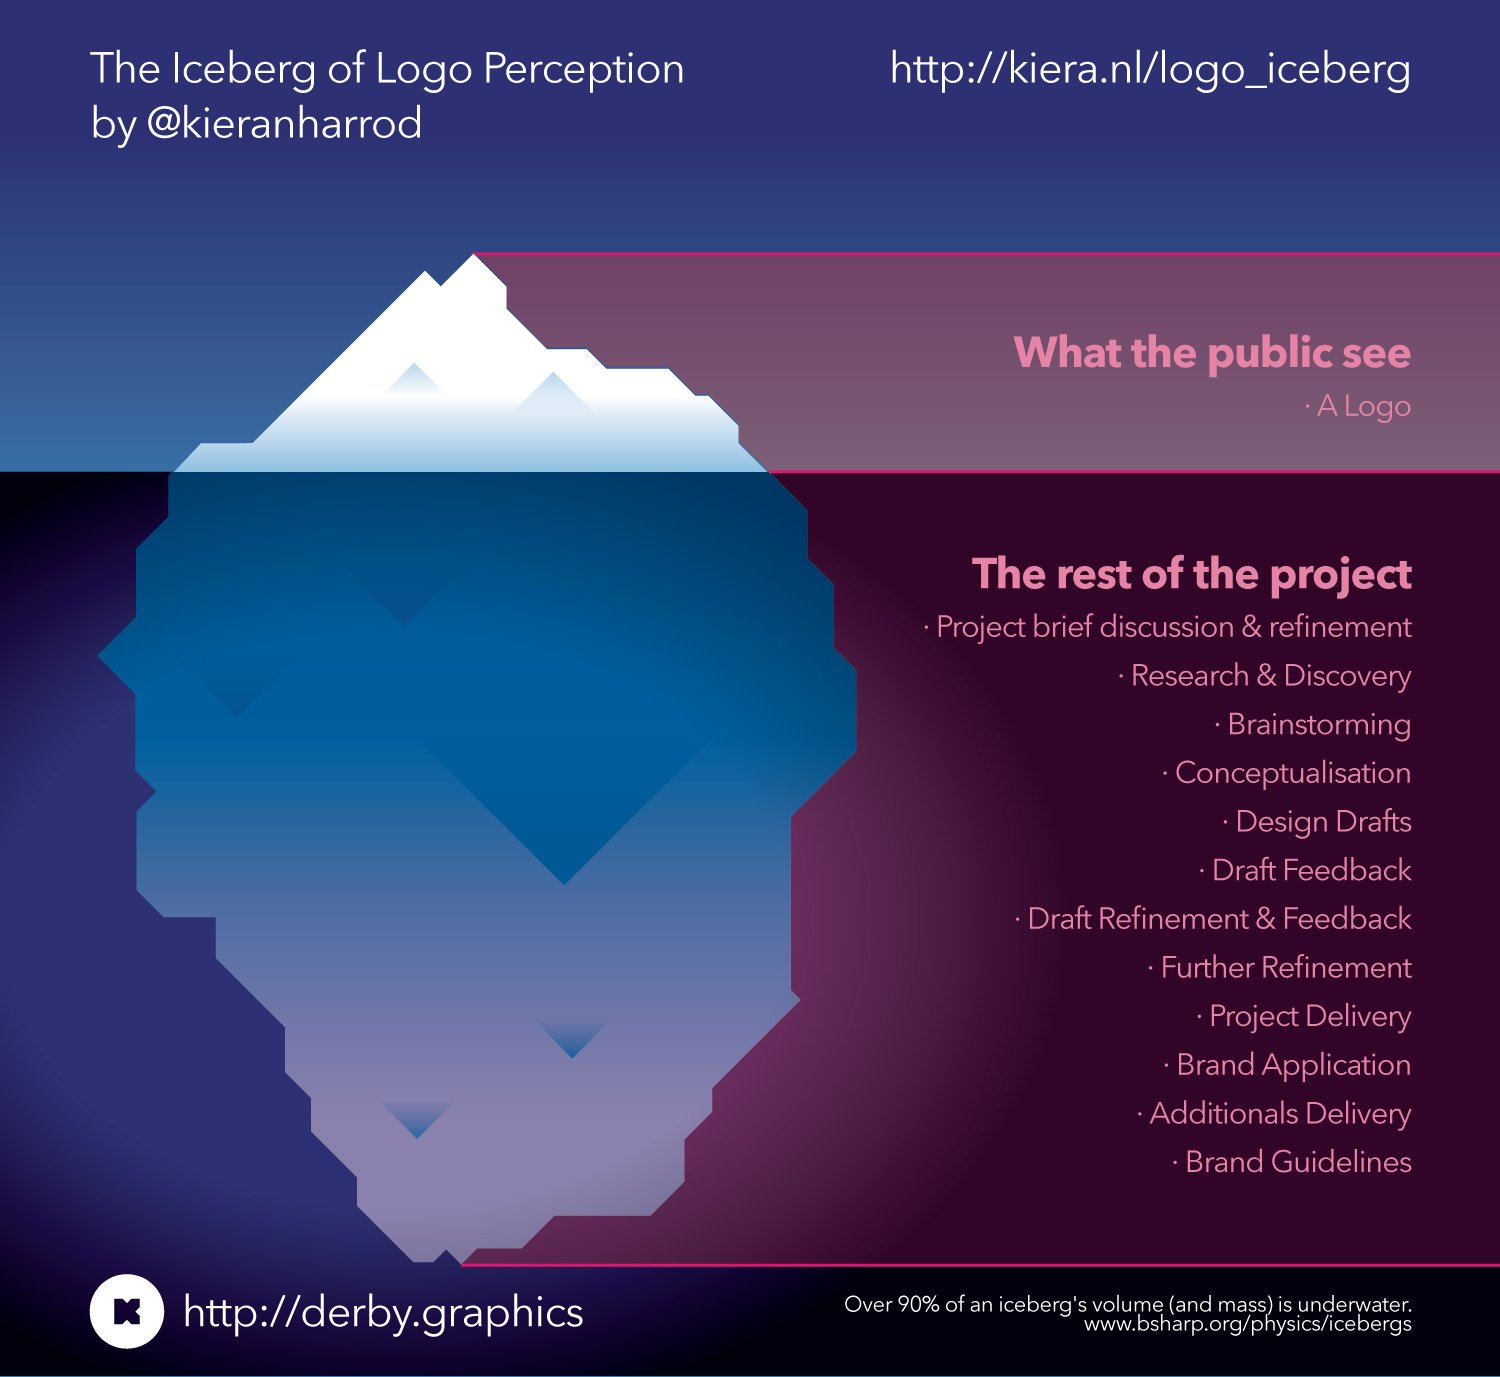 iceberg of logo perception